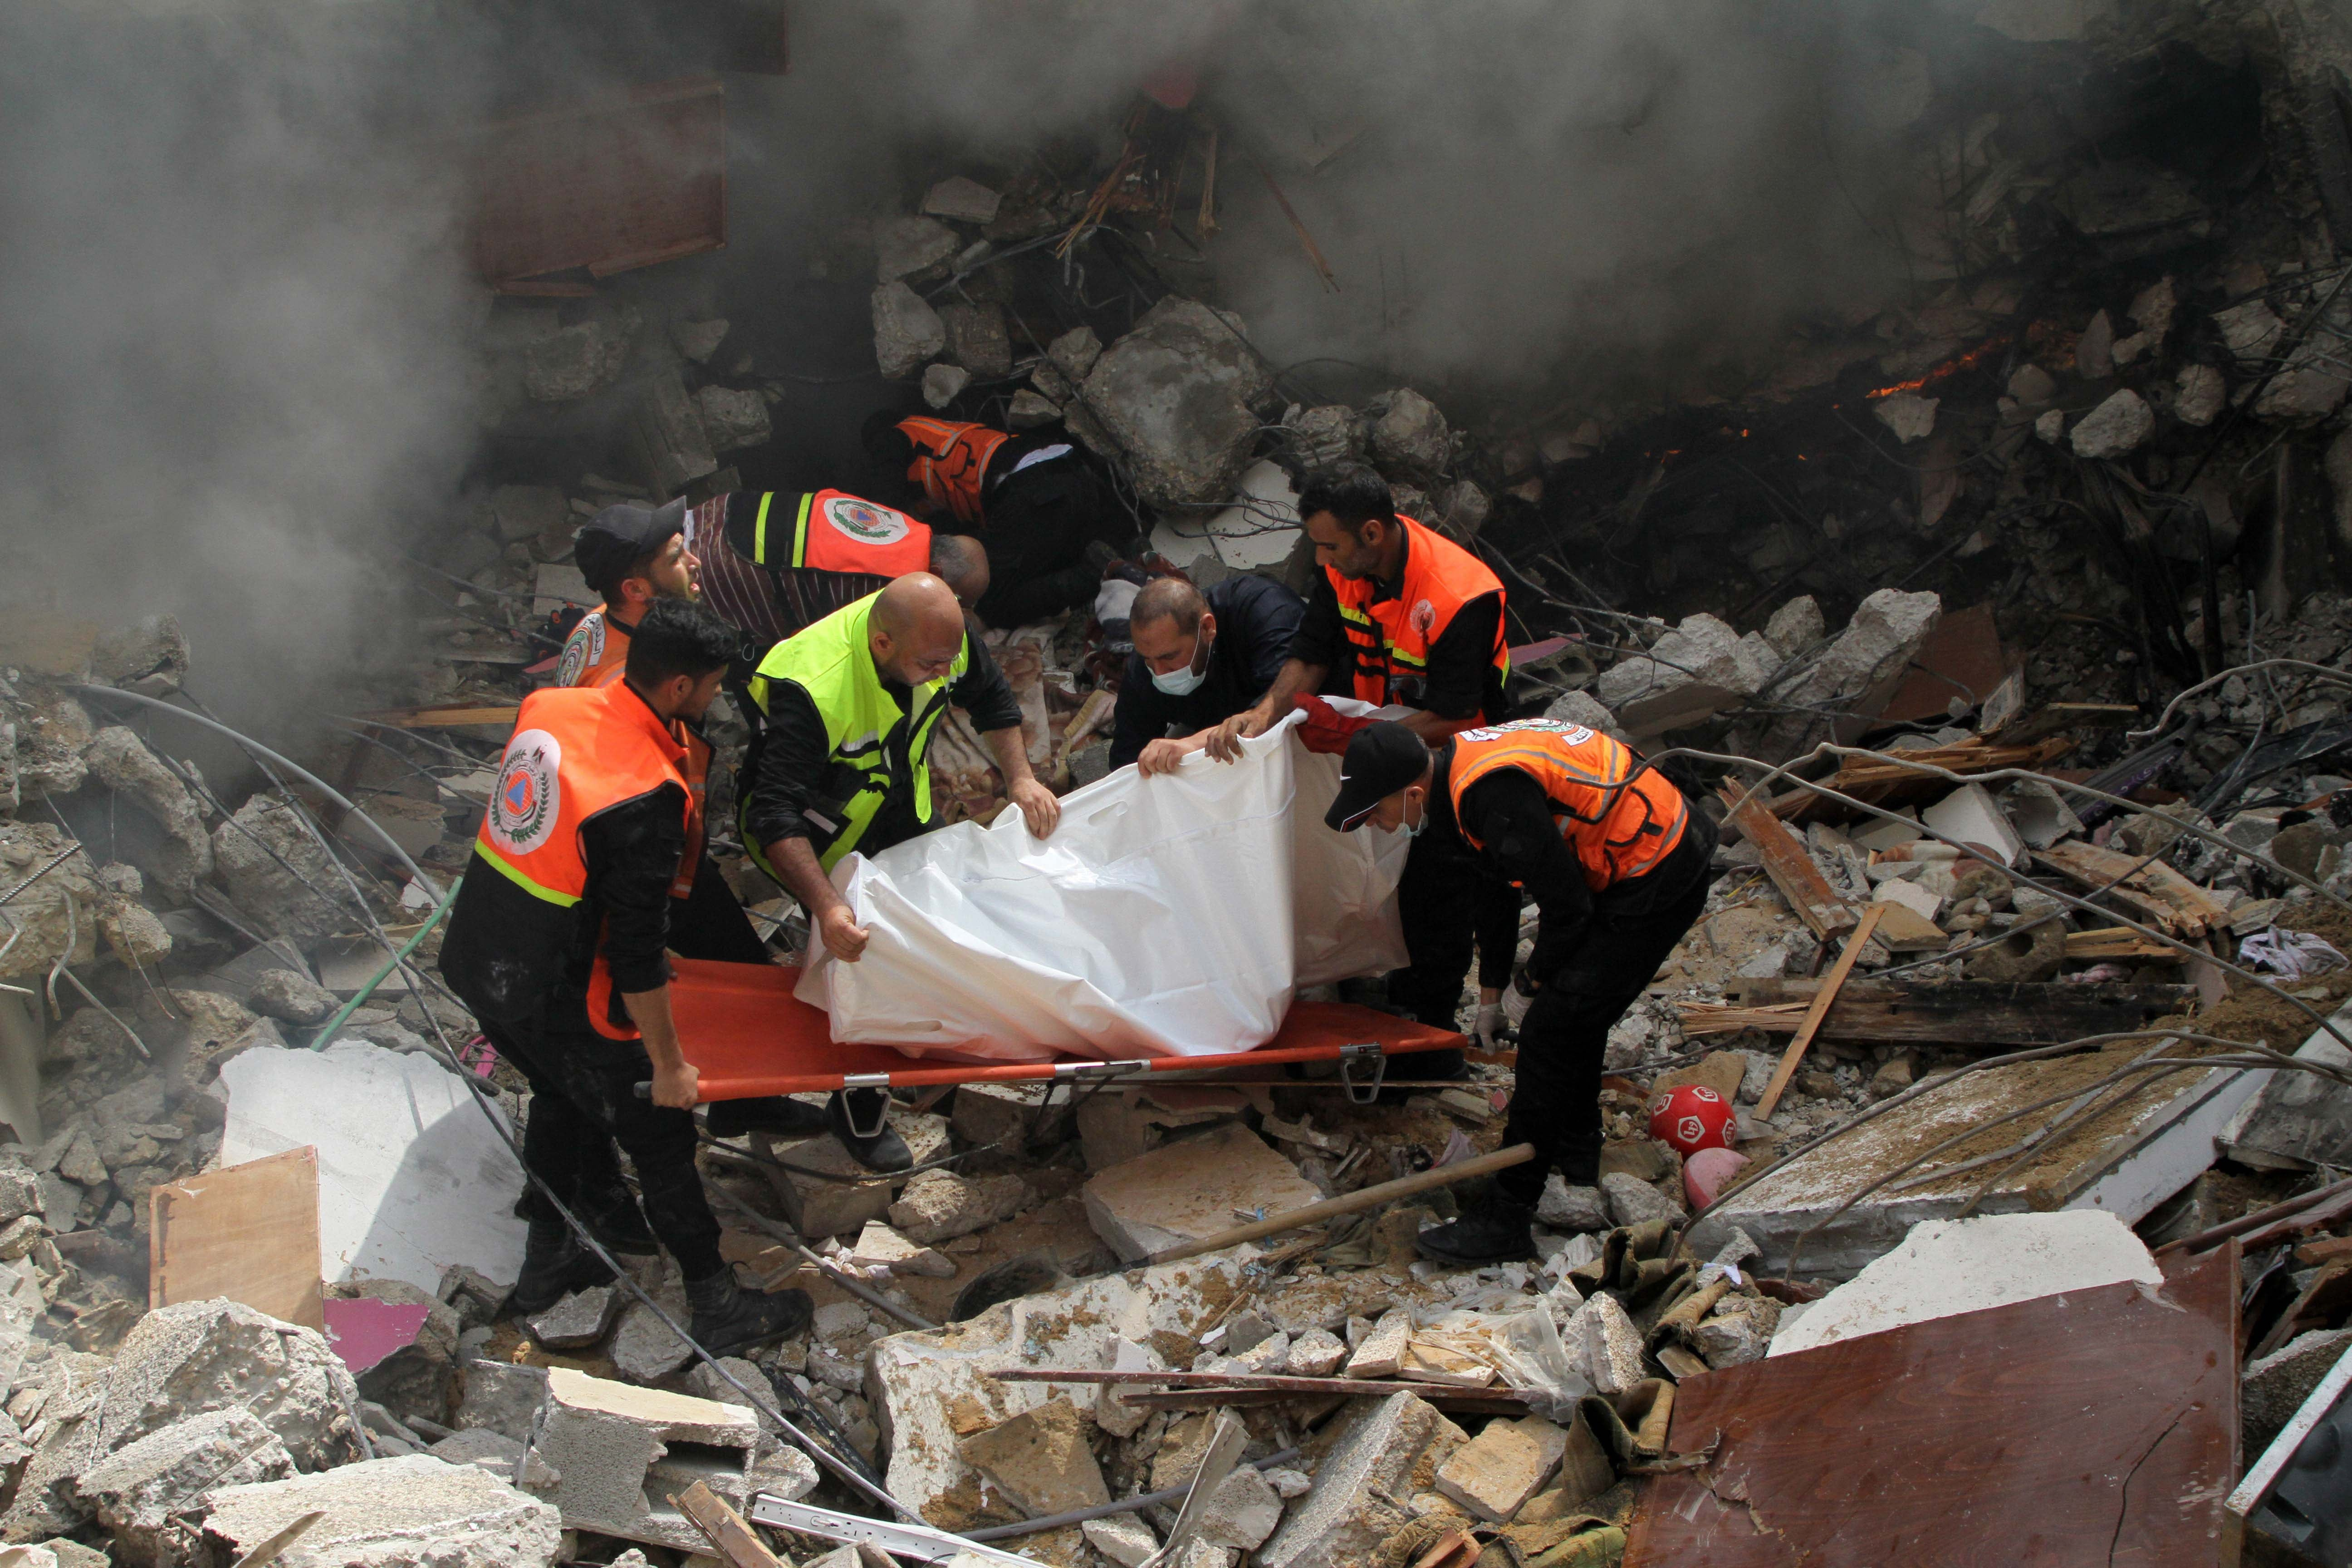 Gaza: Apparent War Crimes During May Fighting